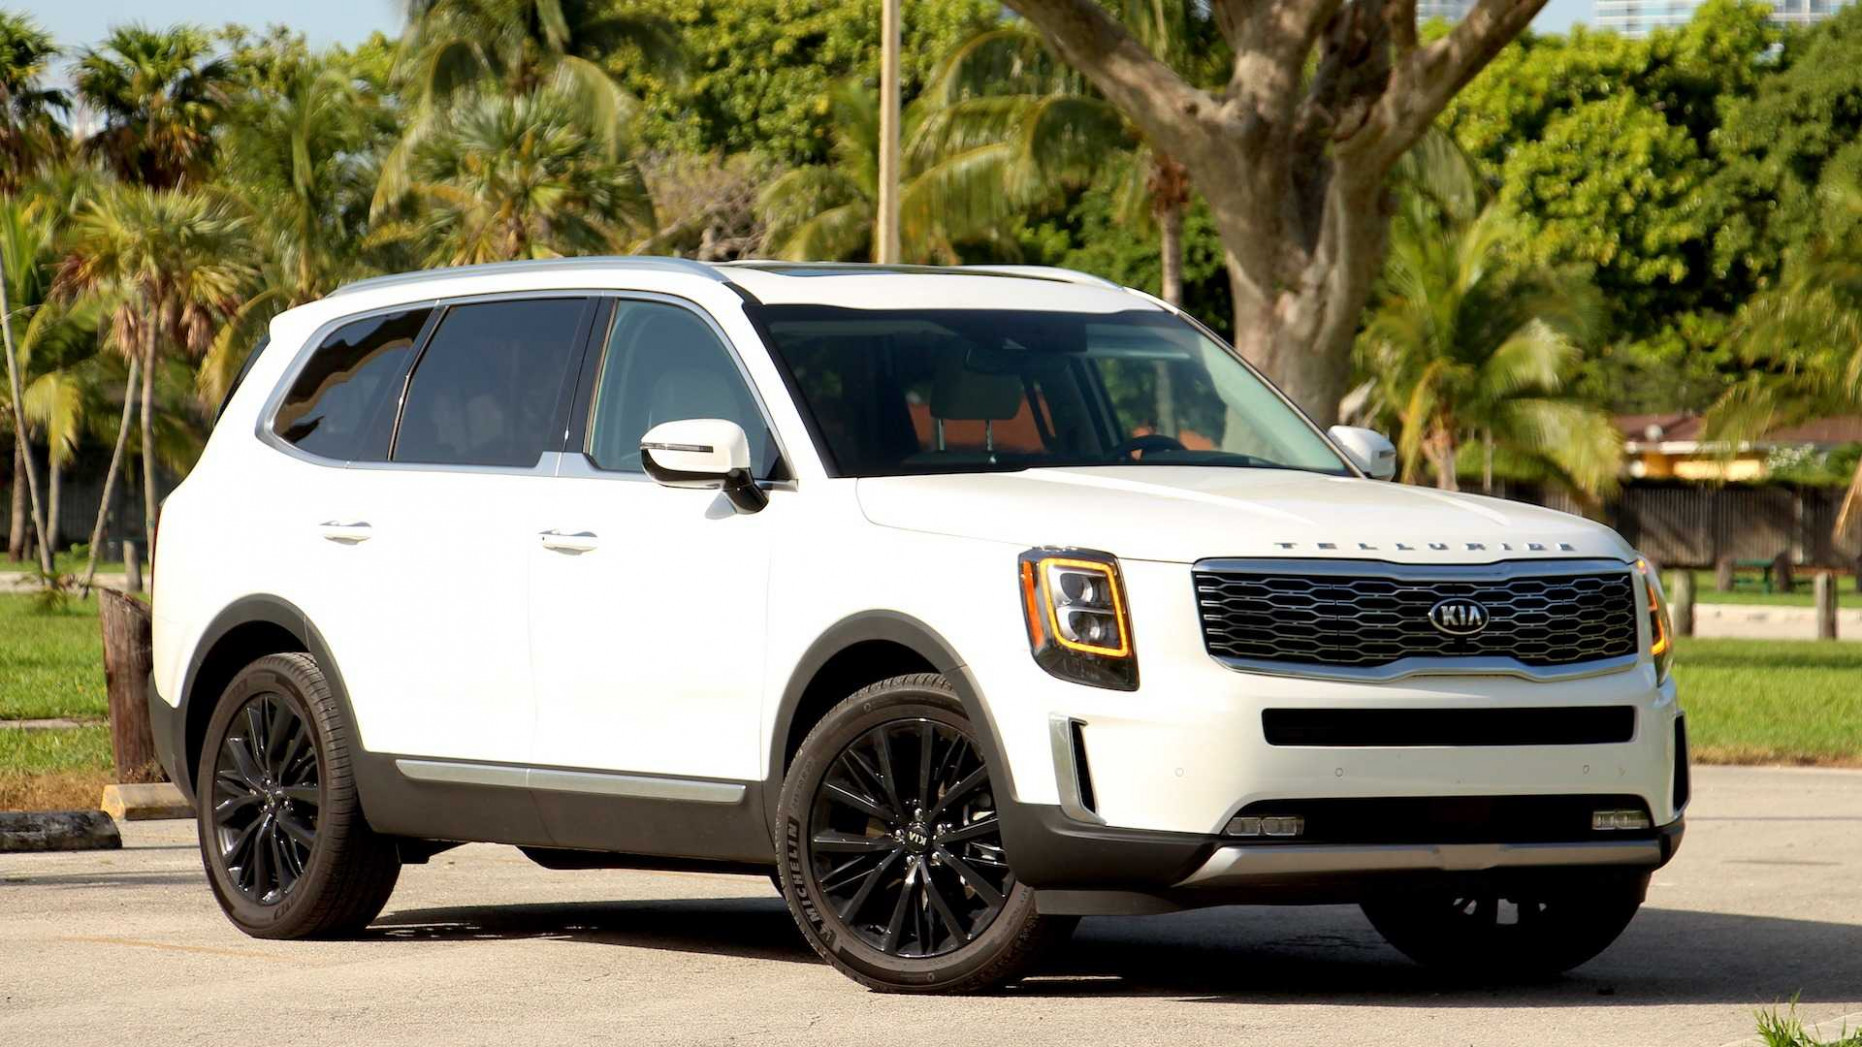 Configurations Kia Telluride 2022 For Sale